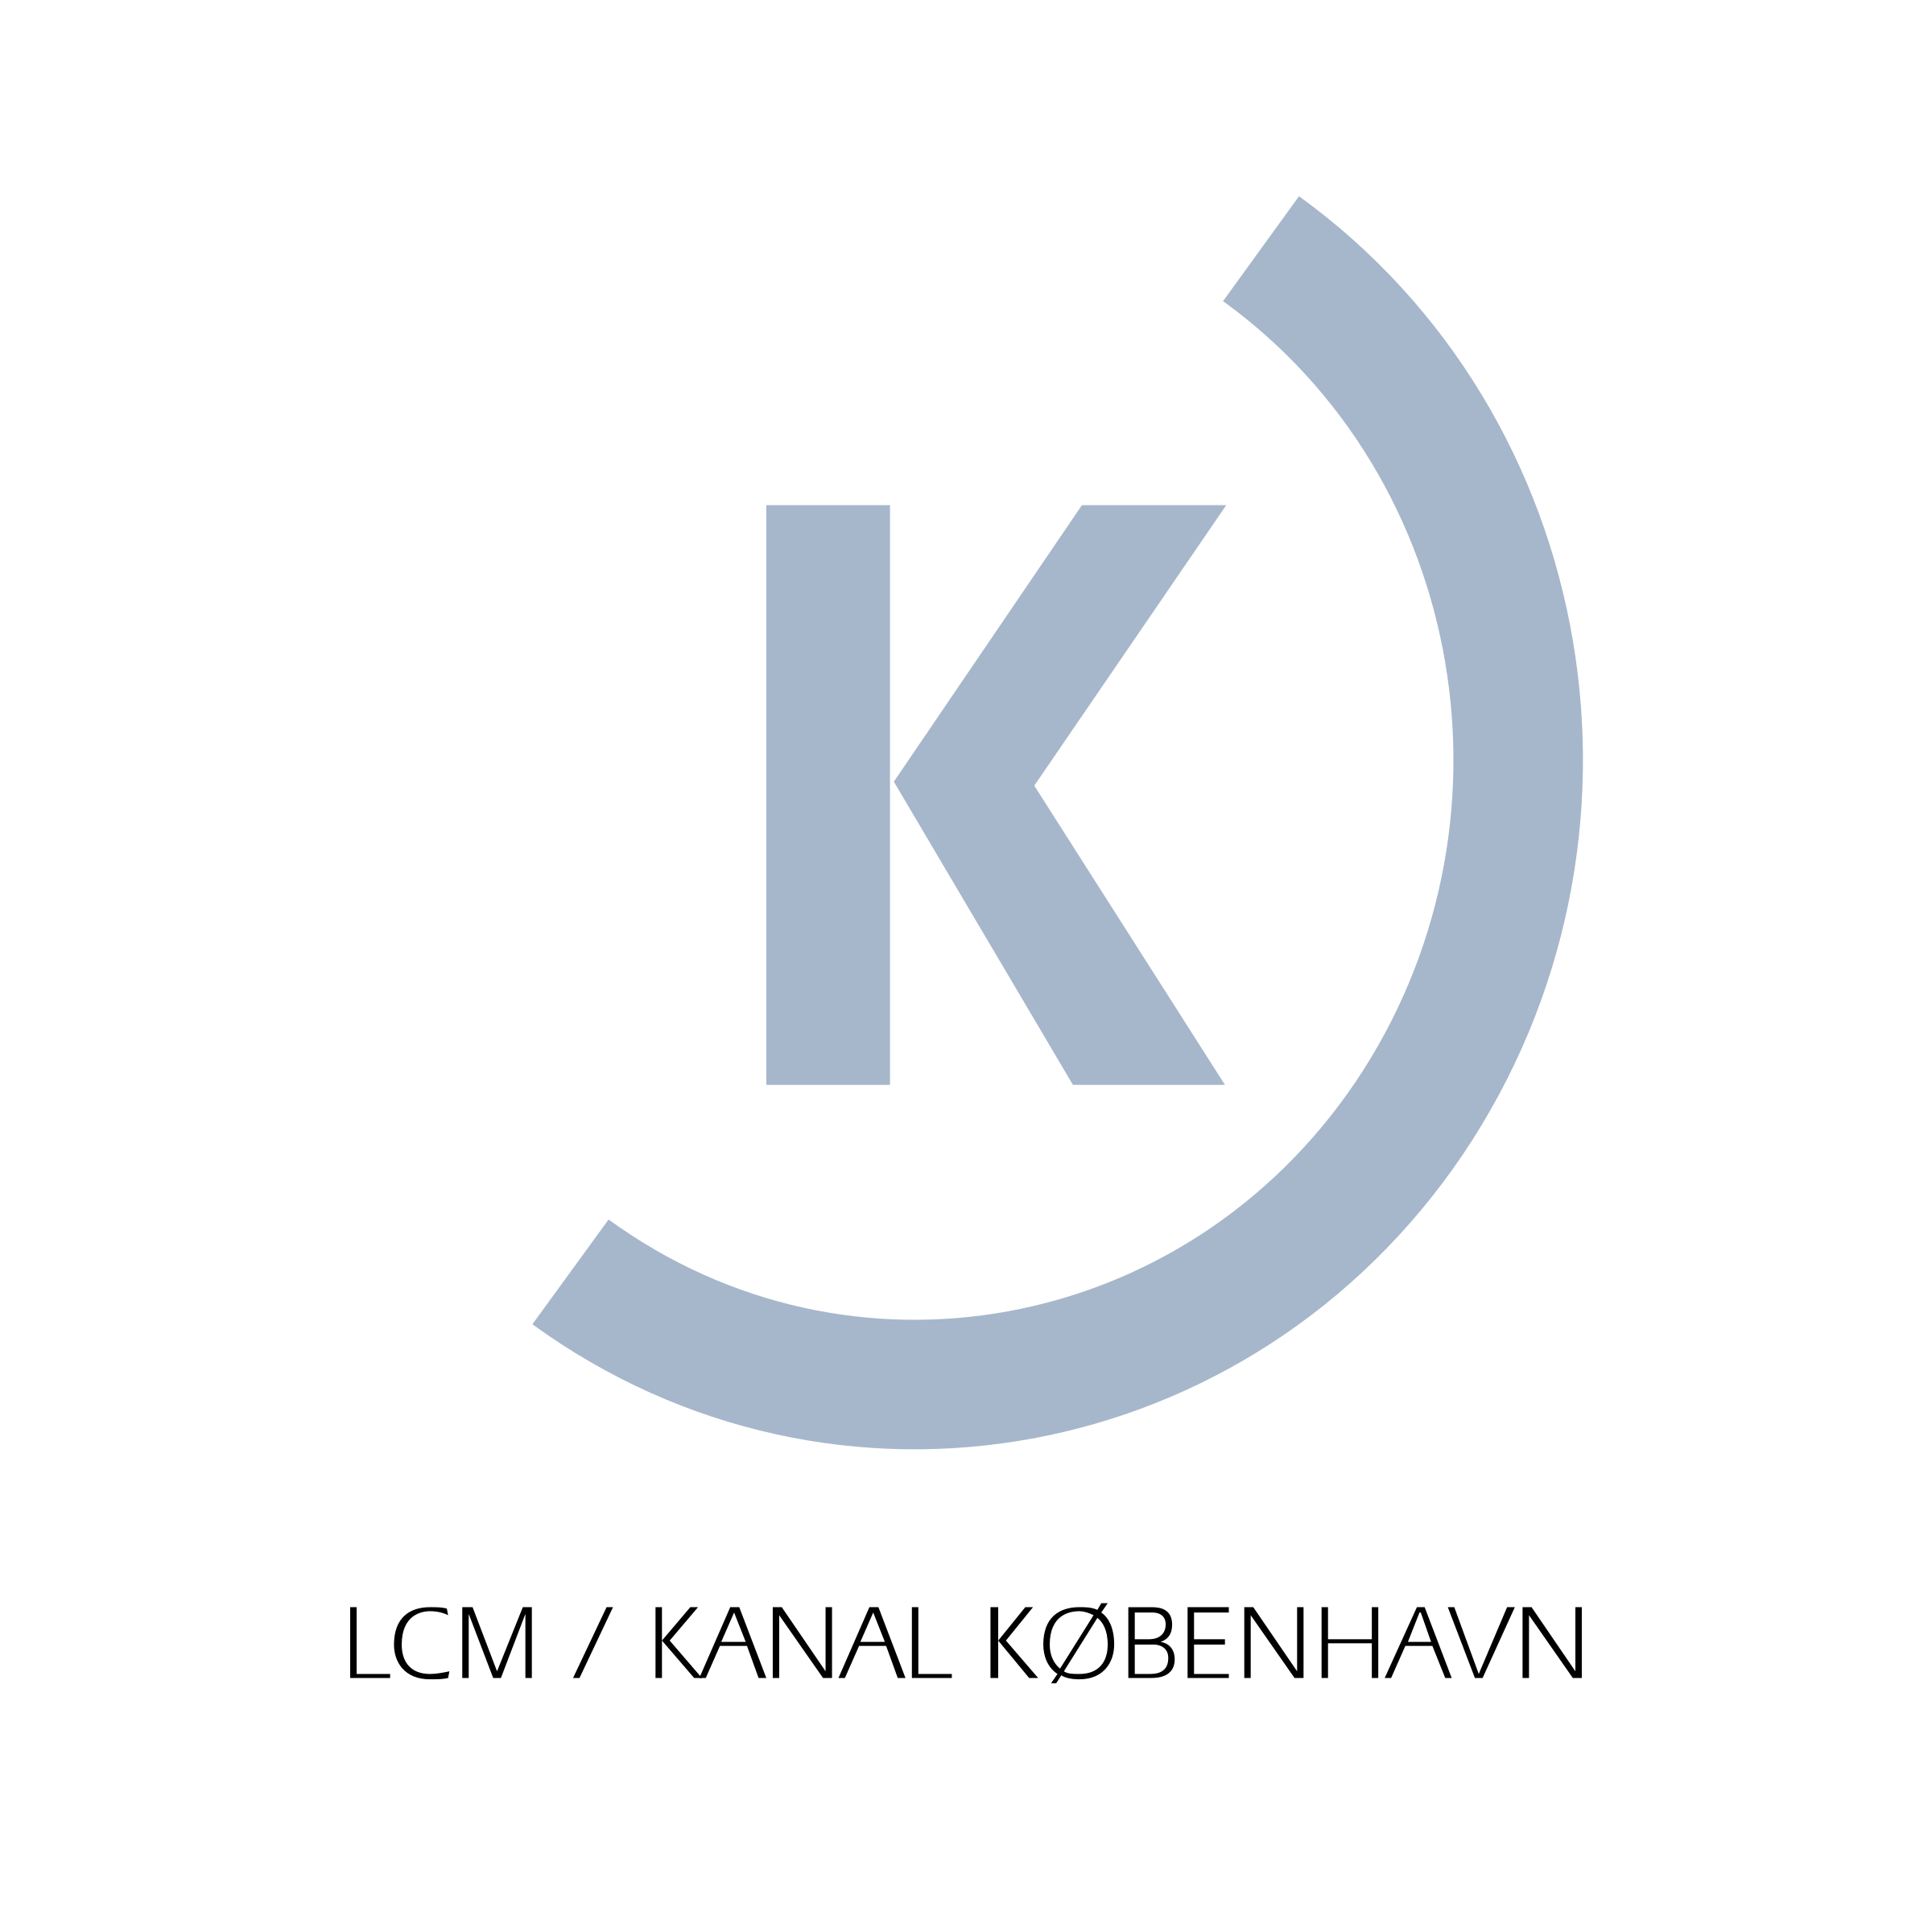 Transparent k vector png. Lcm kanal logo svg